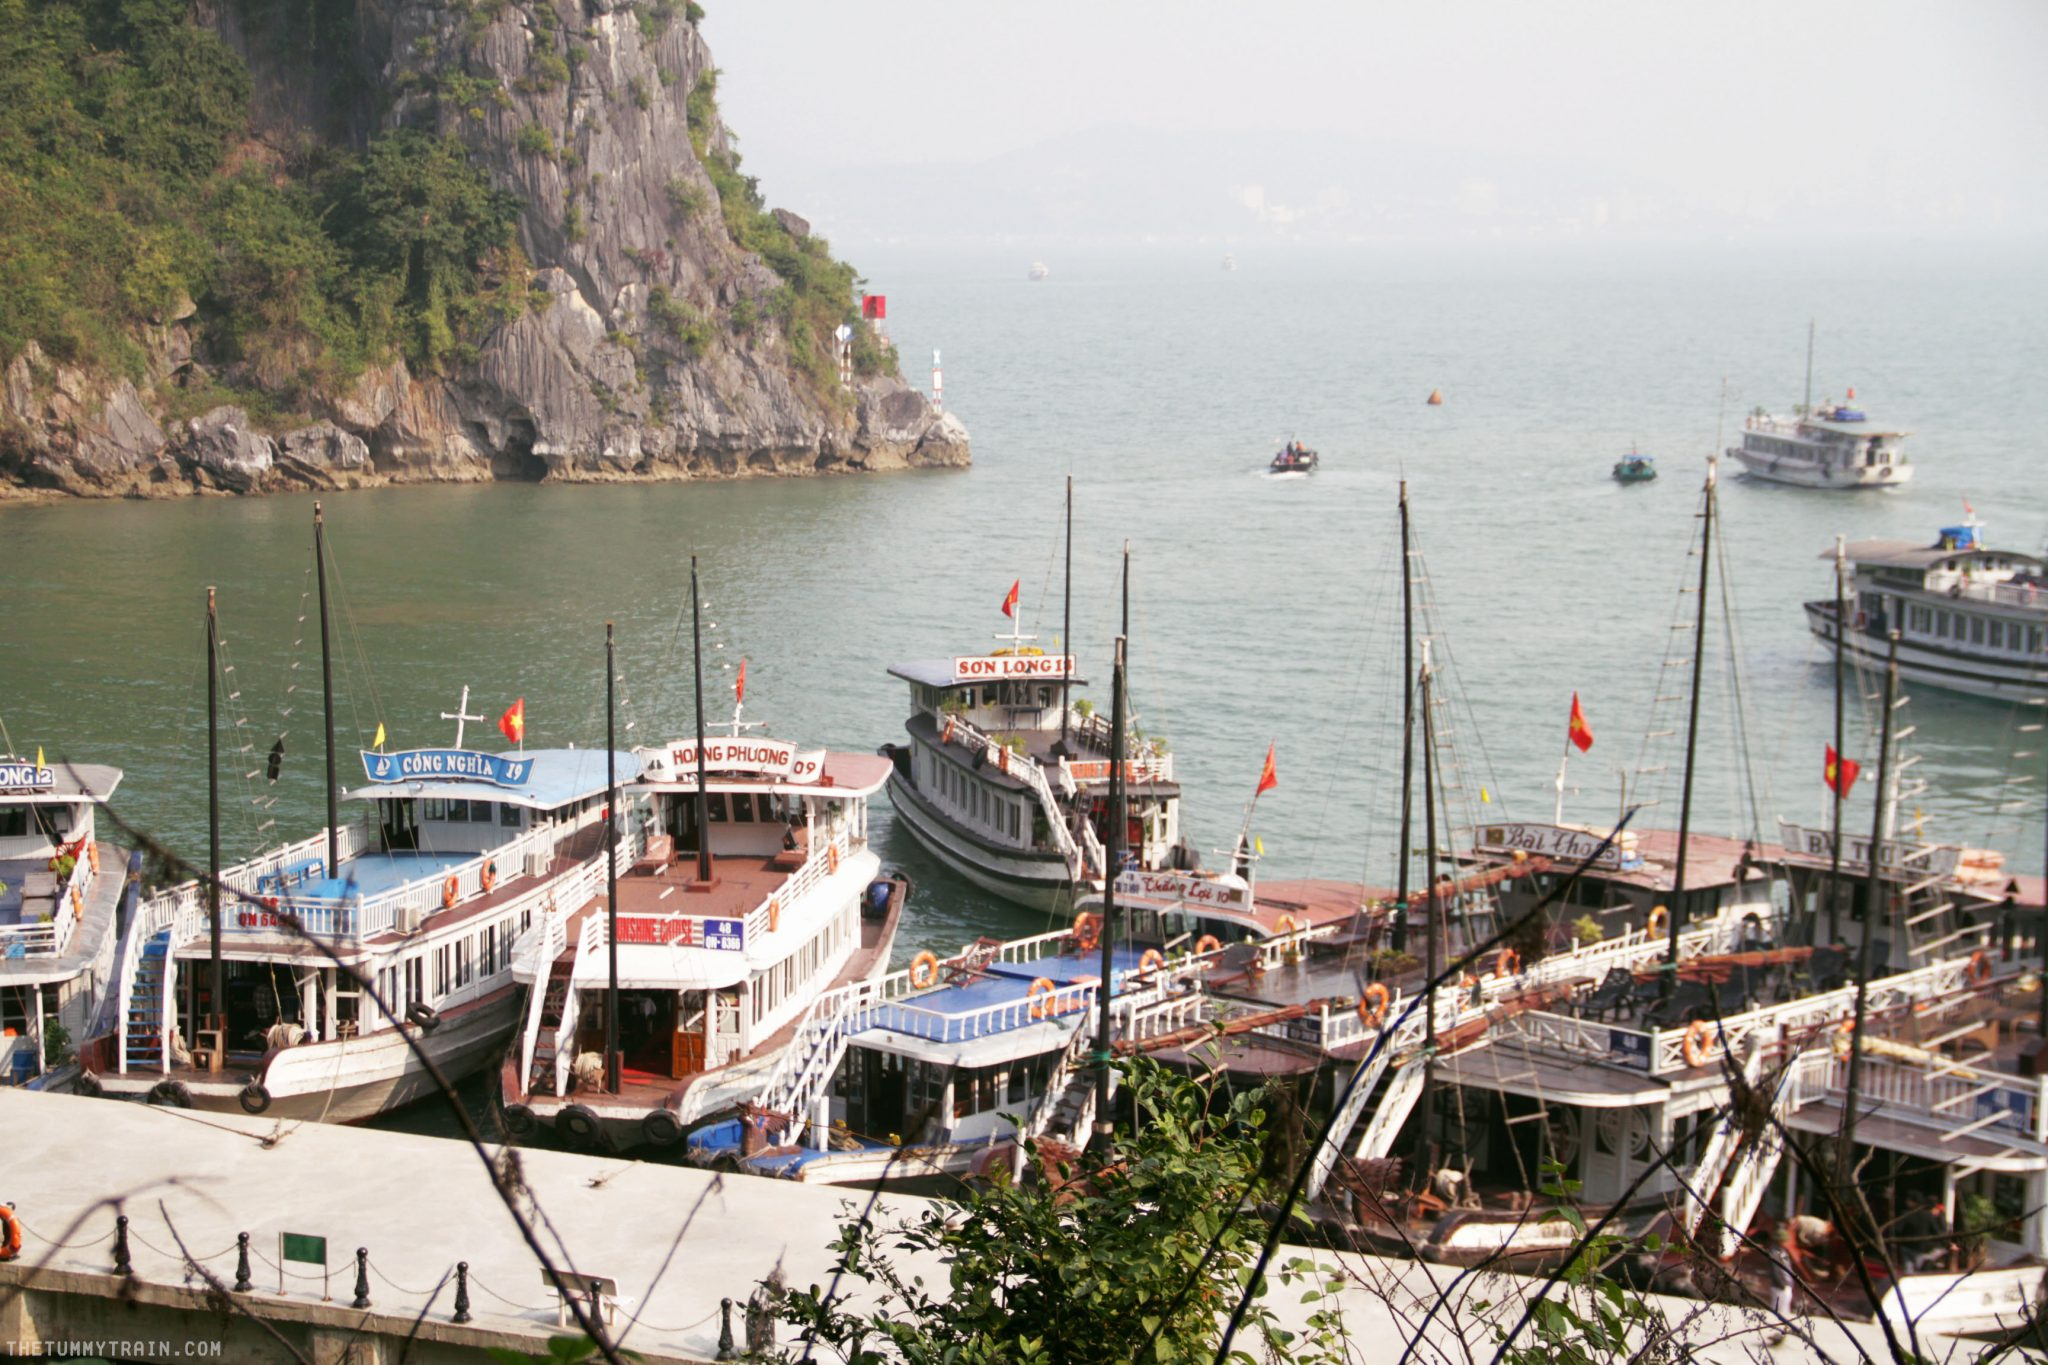 Halong COVER - This post about my Hanoi trip in 2013 is the ultimate throwback